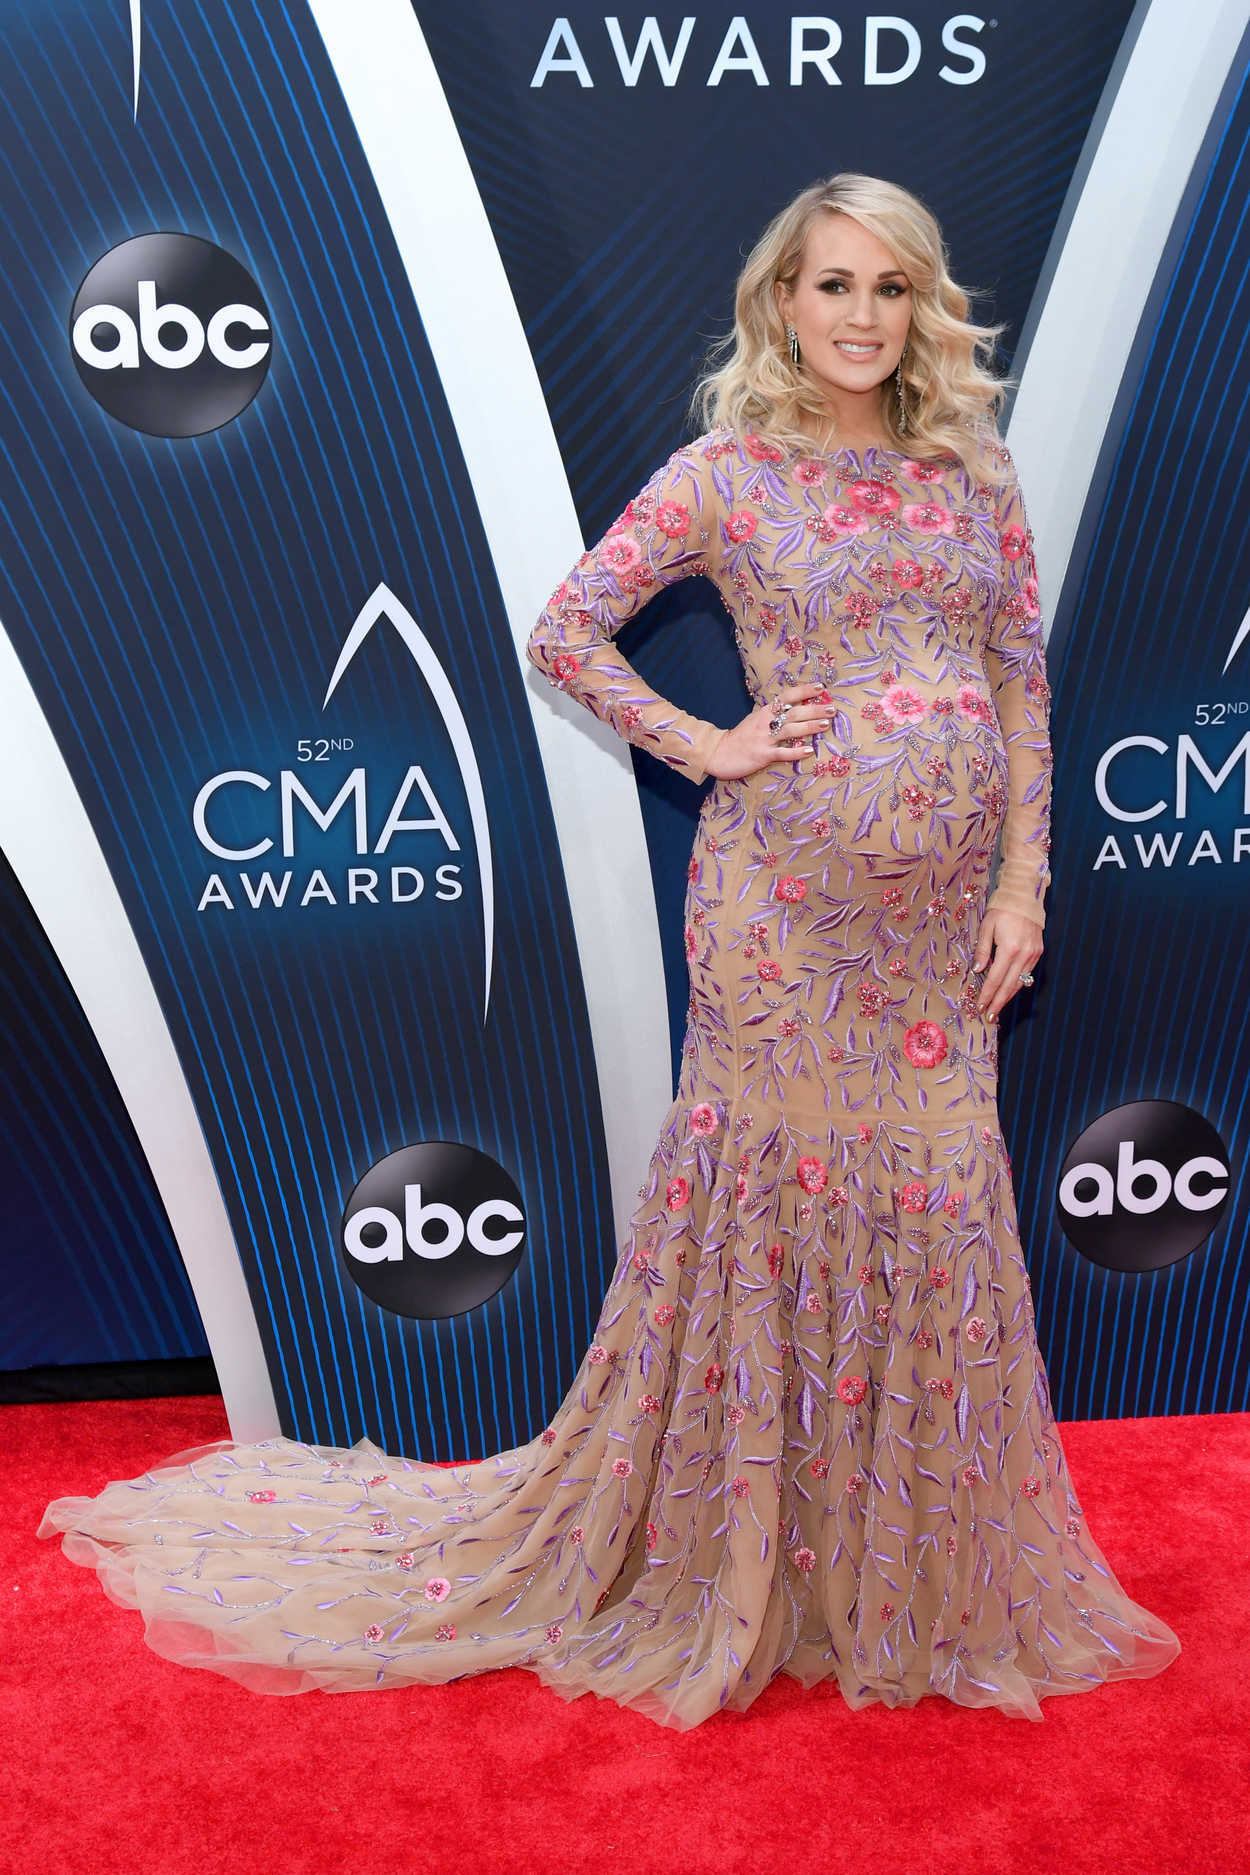 Carrie Underwood Attends the 52nd Annual CMA Awards at the Bridgestone Arena in Nashvill 1114